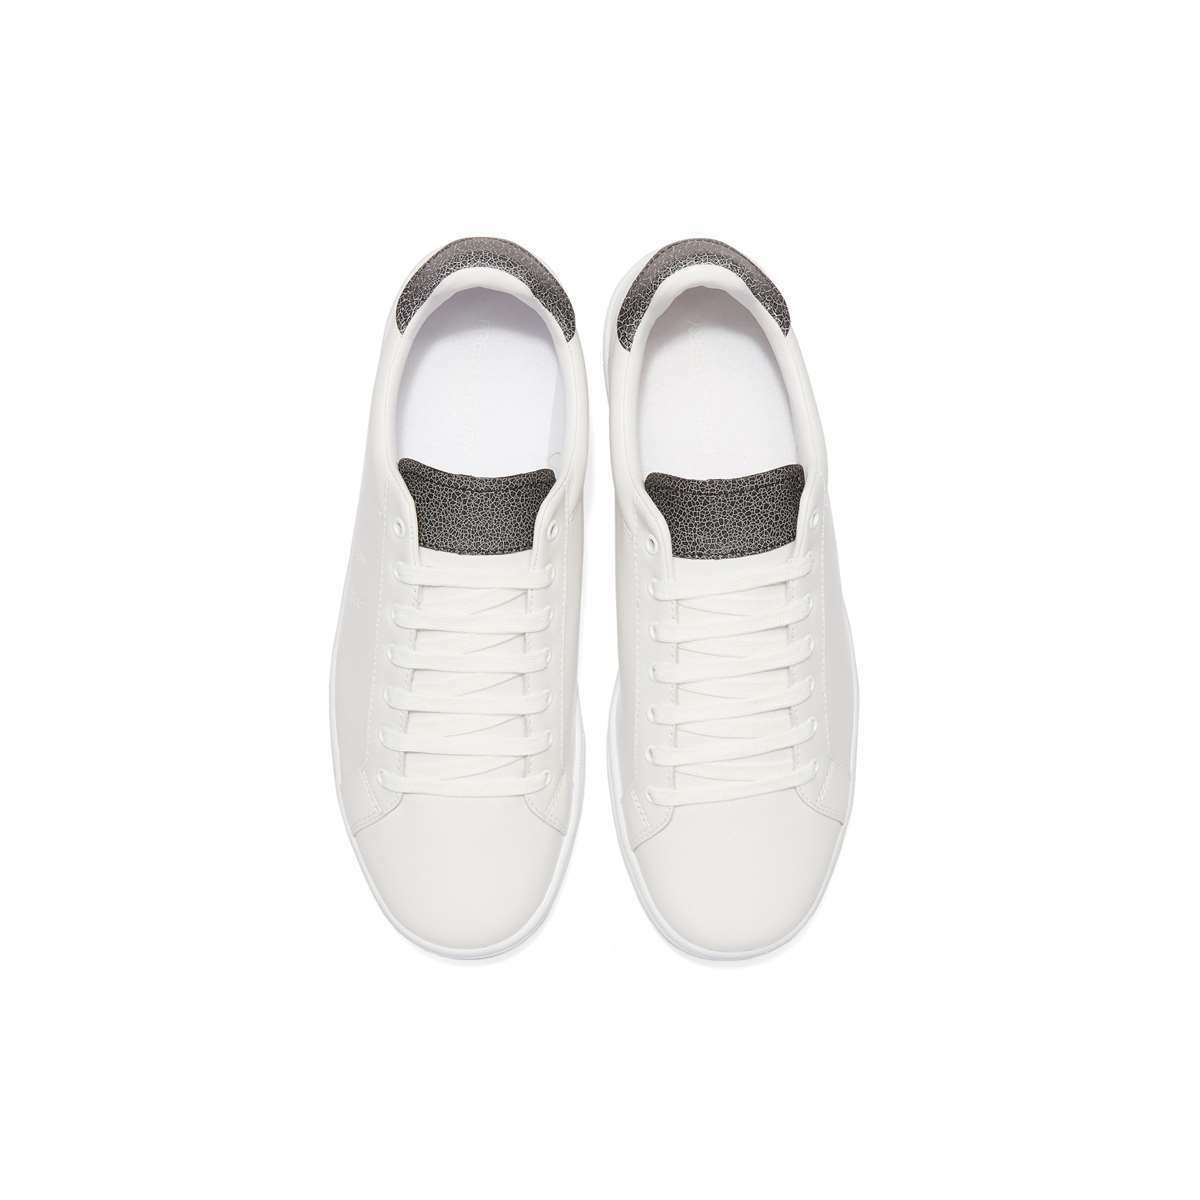 Uomo Fred Perry Shoes B721 White  New Authentic